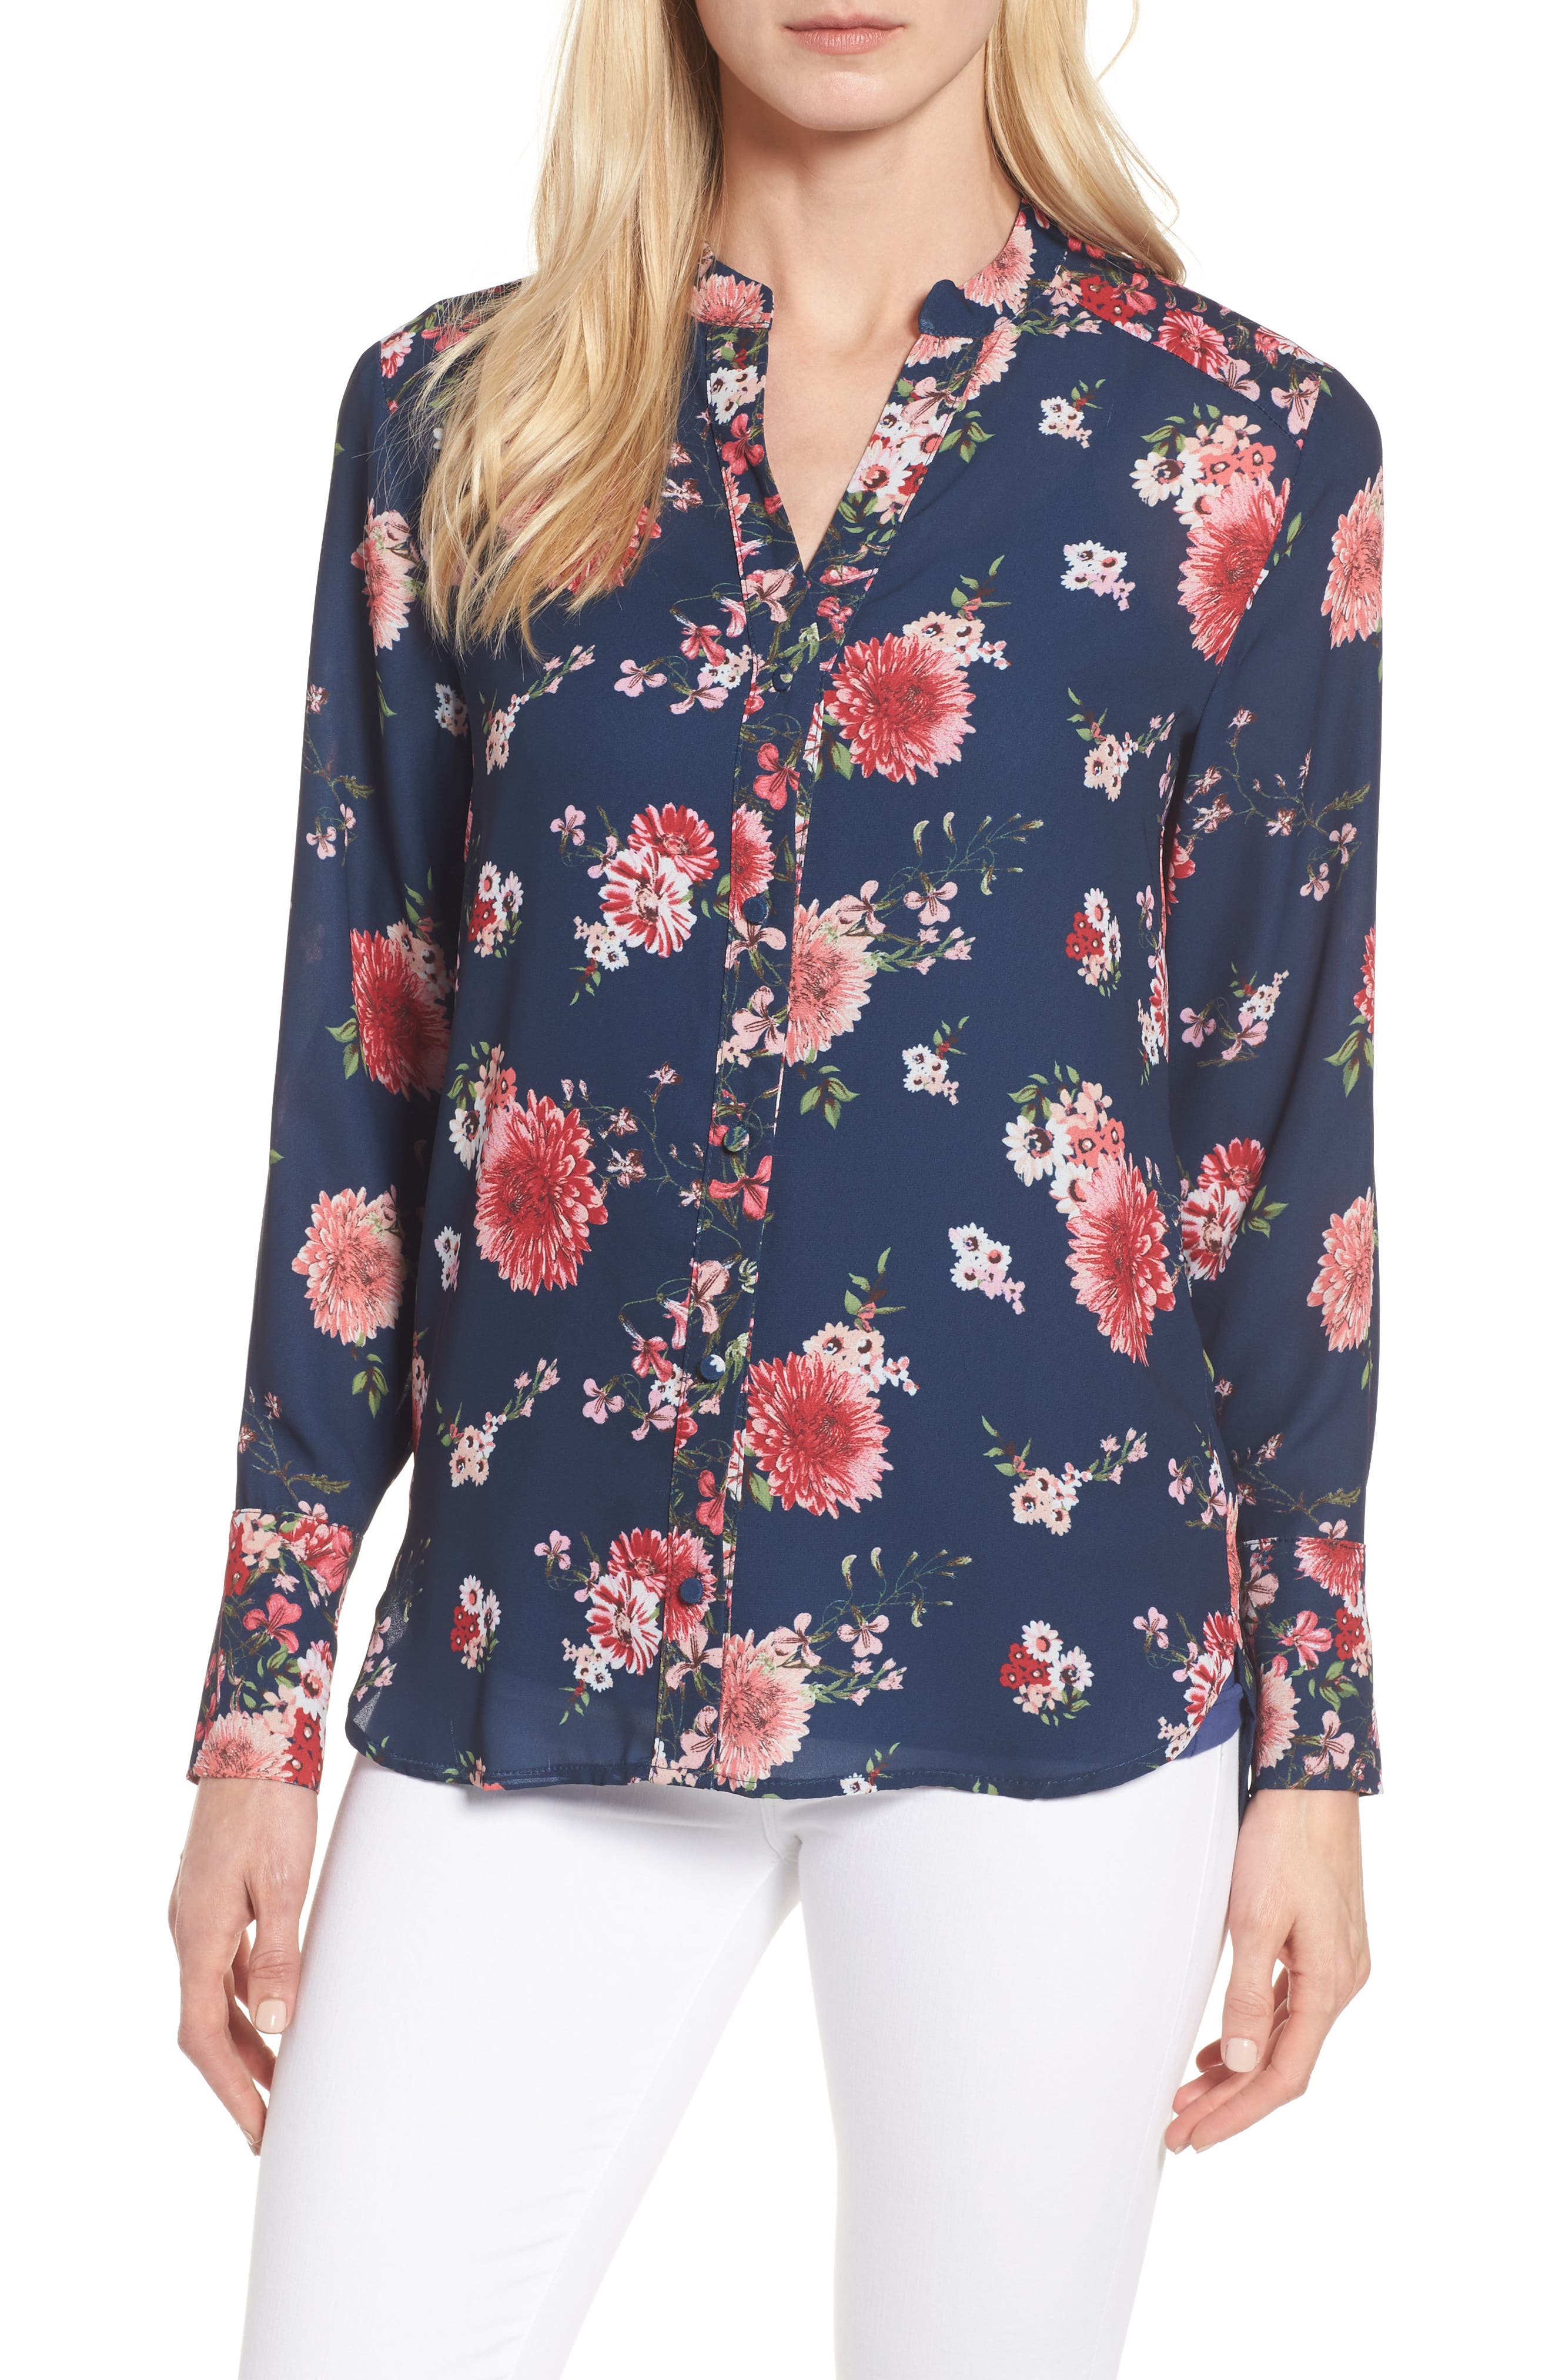 KUT FROM THE KLOTH Liliana Floral Blouse